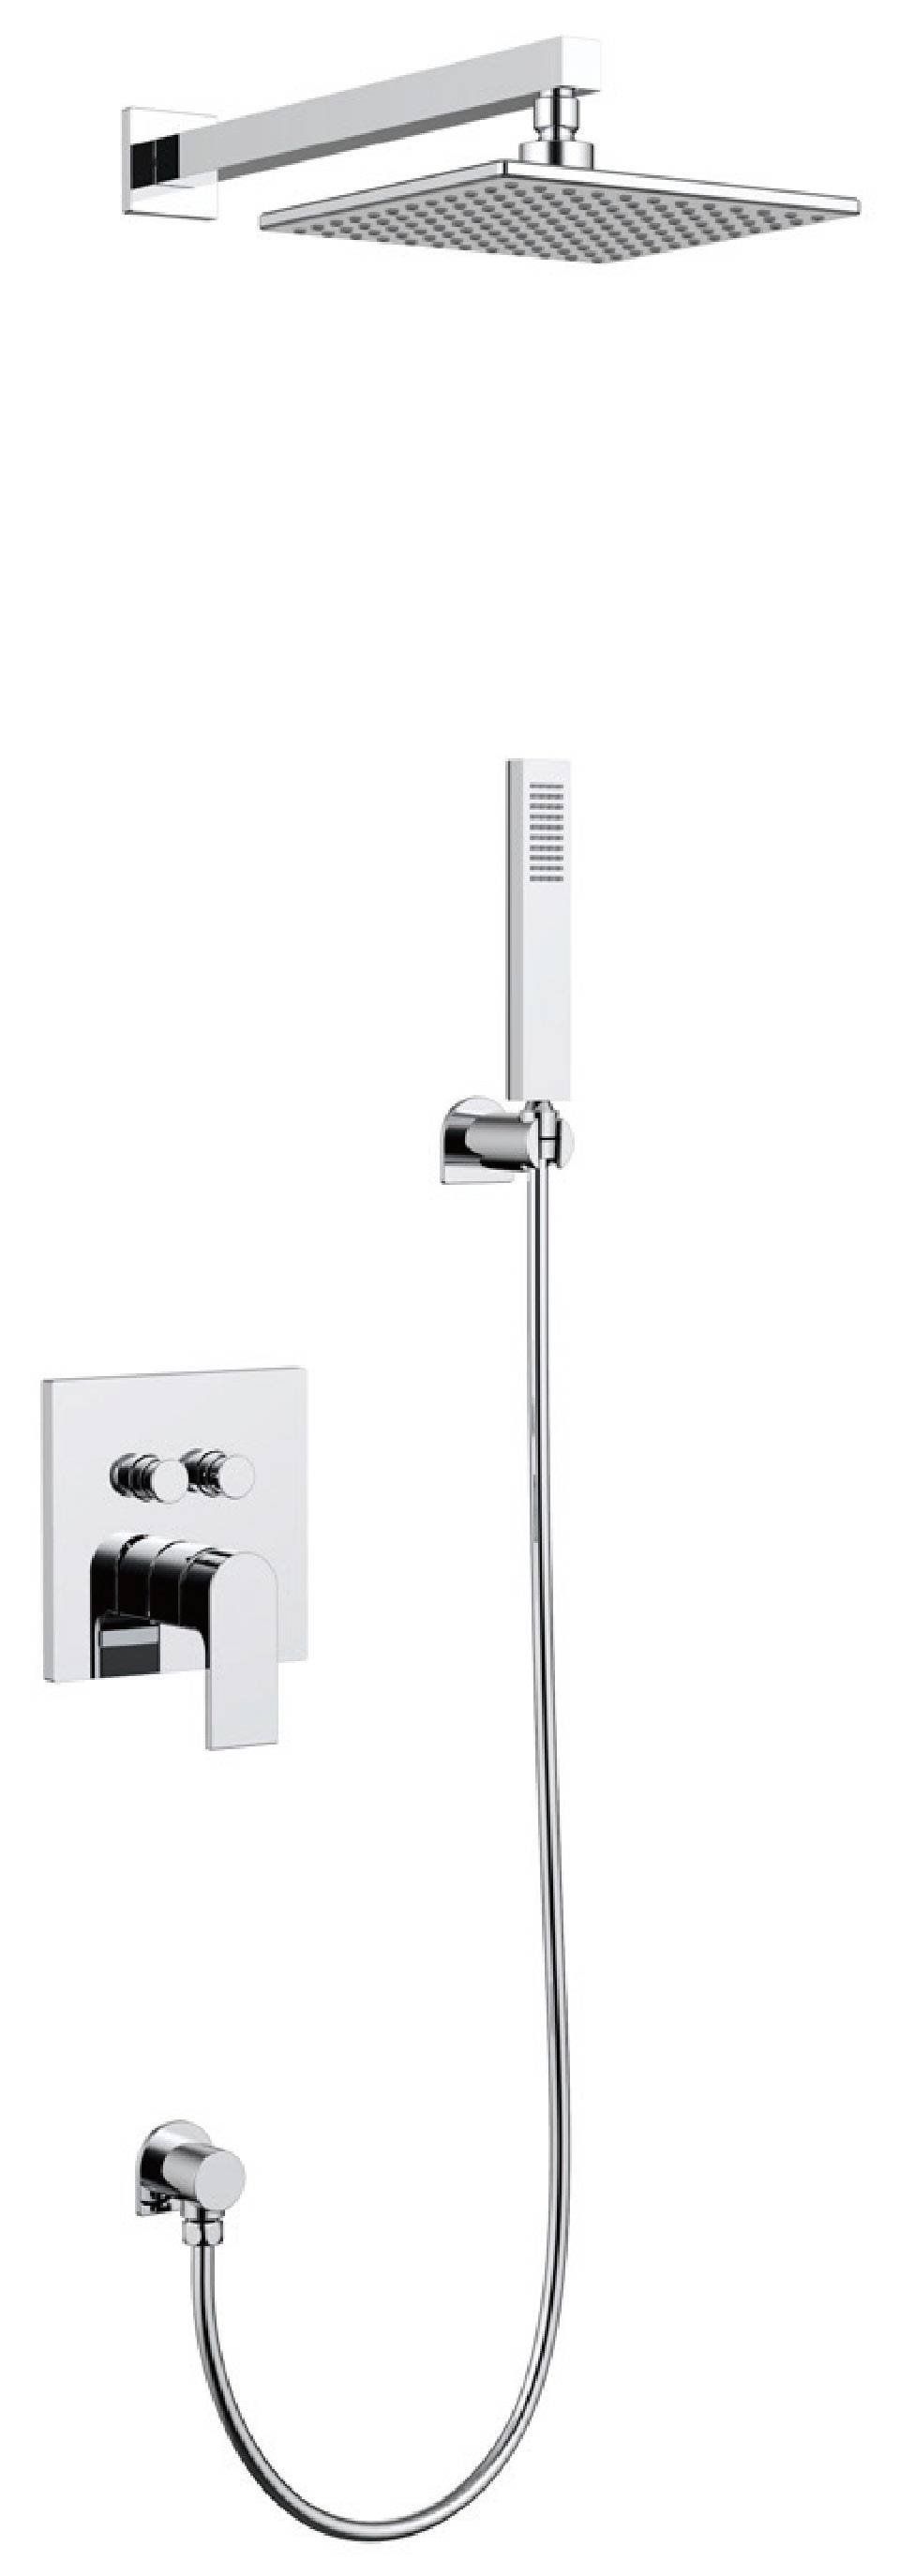 Modern chrome brass in-wall bathroom concealed shower faucet tap